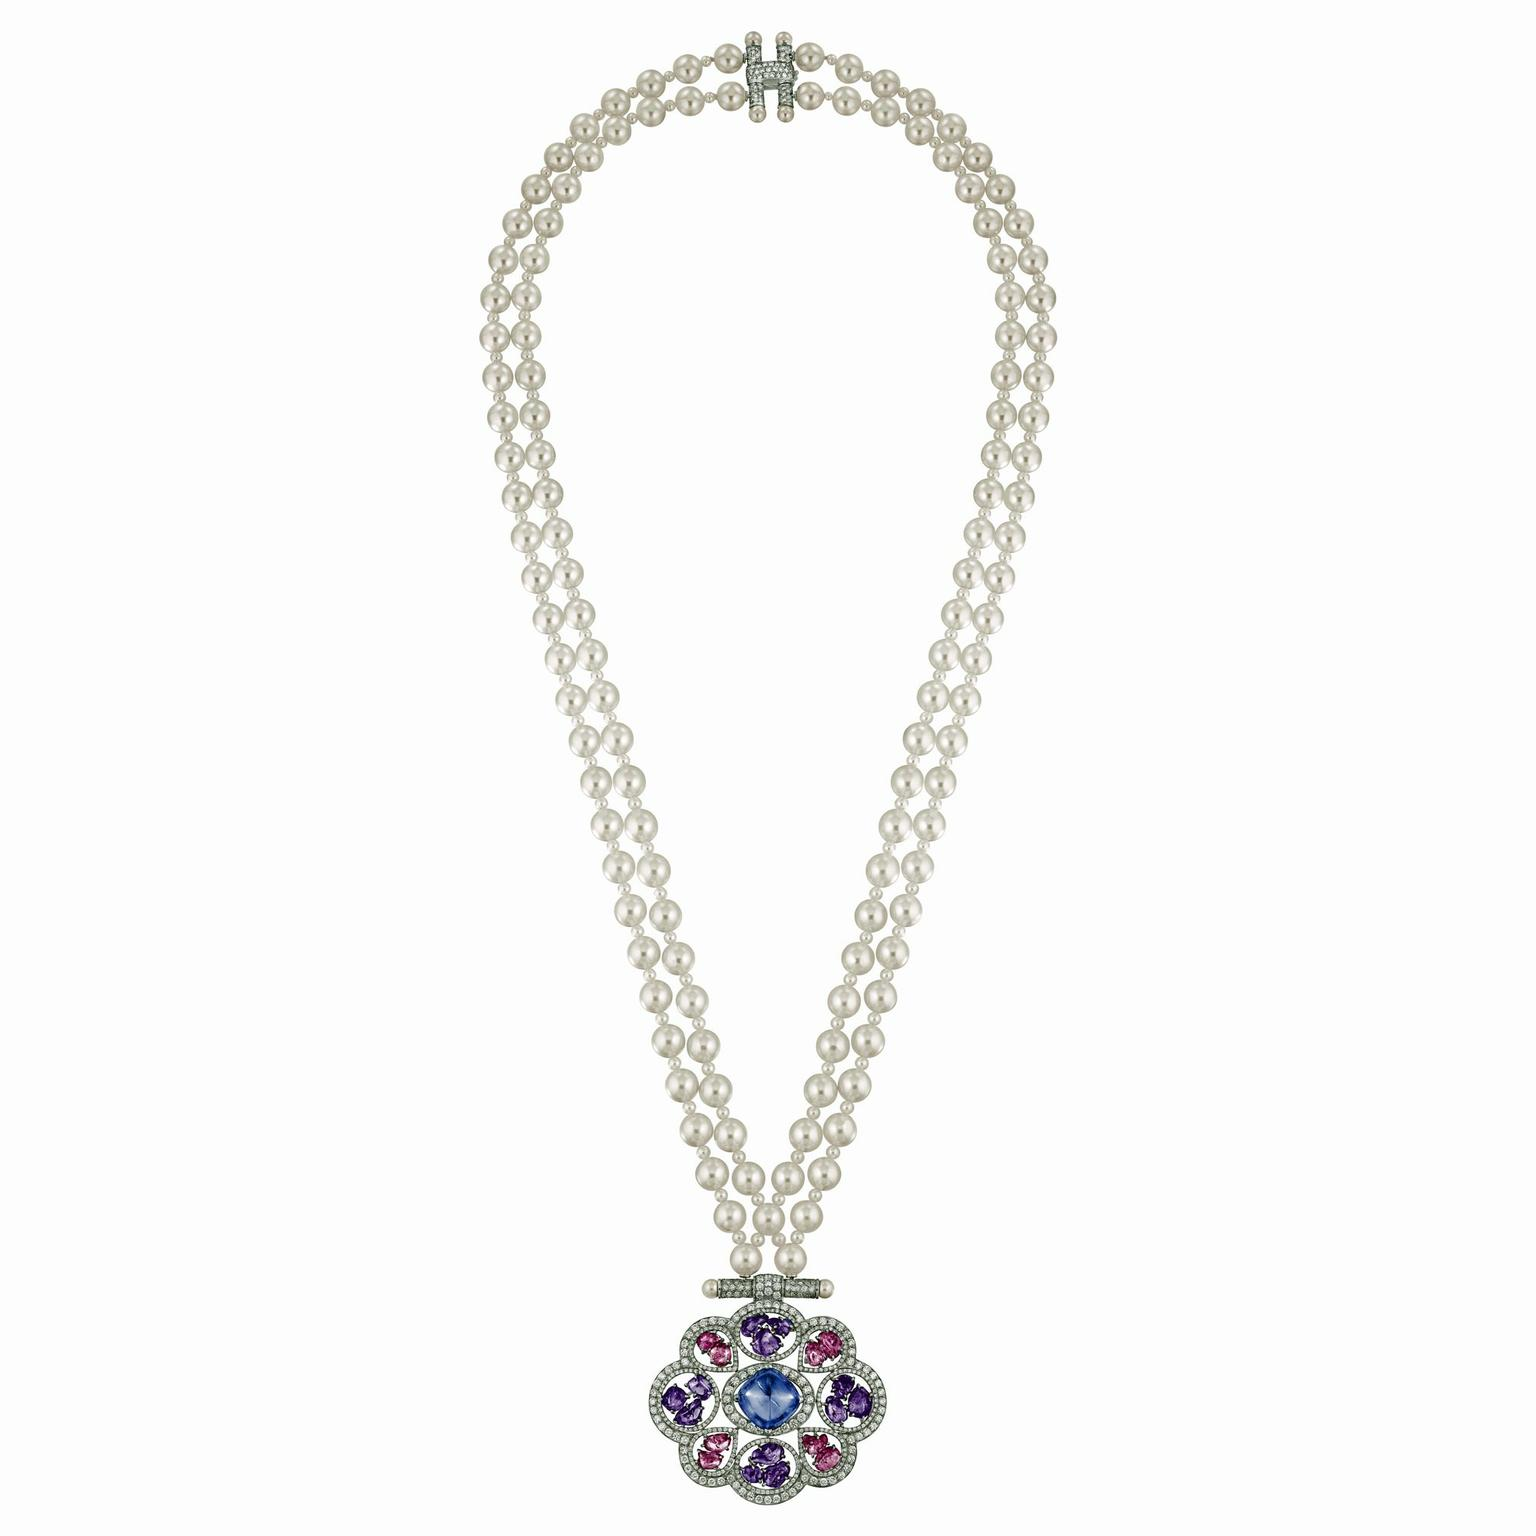 Chanel Talisman collection necklace